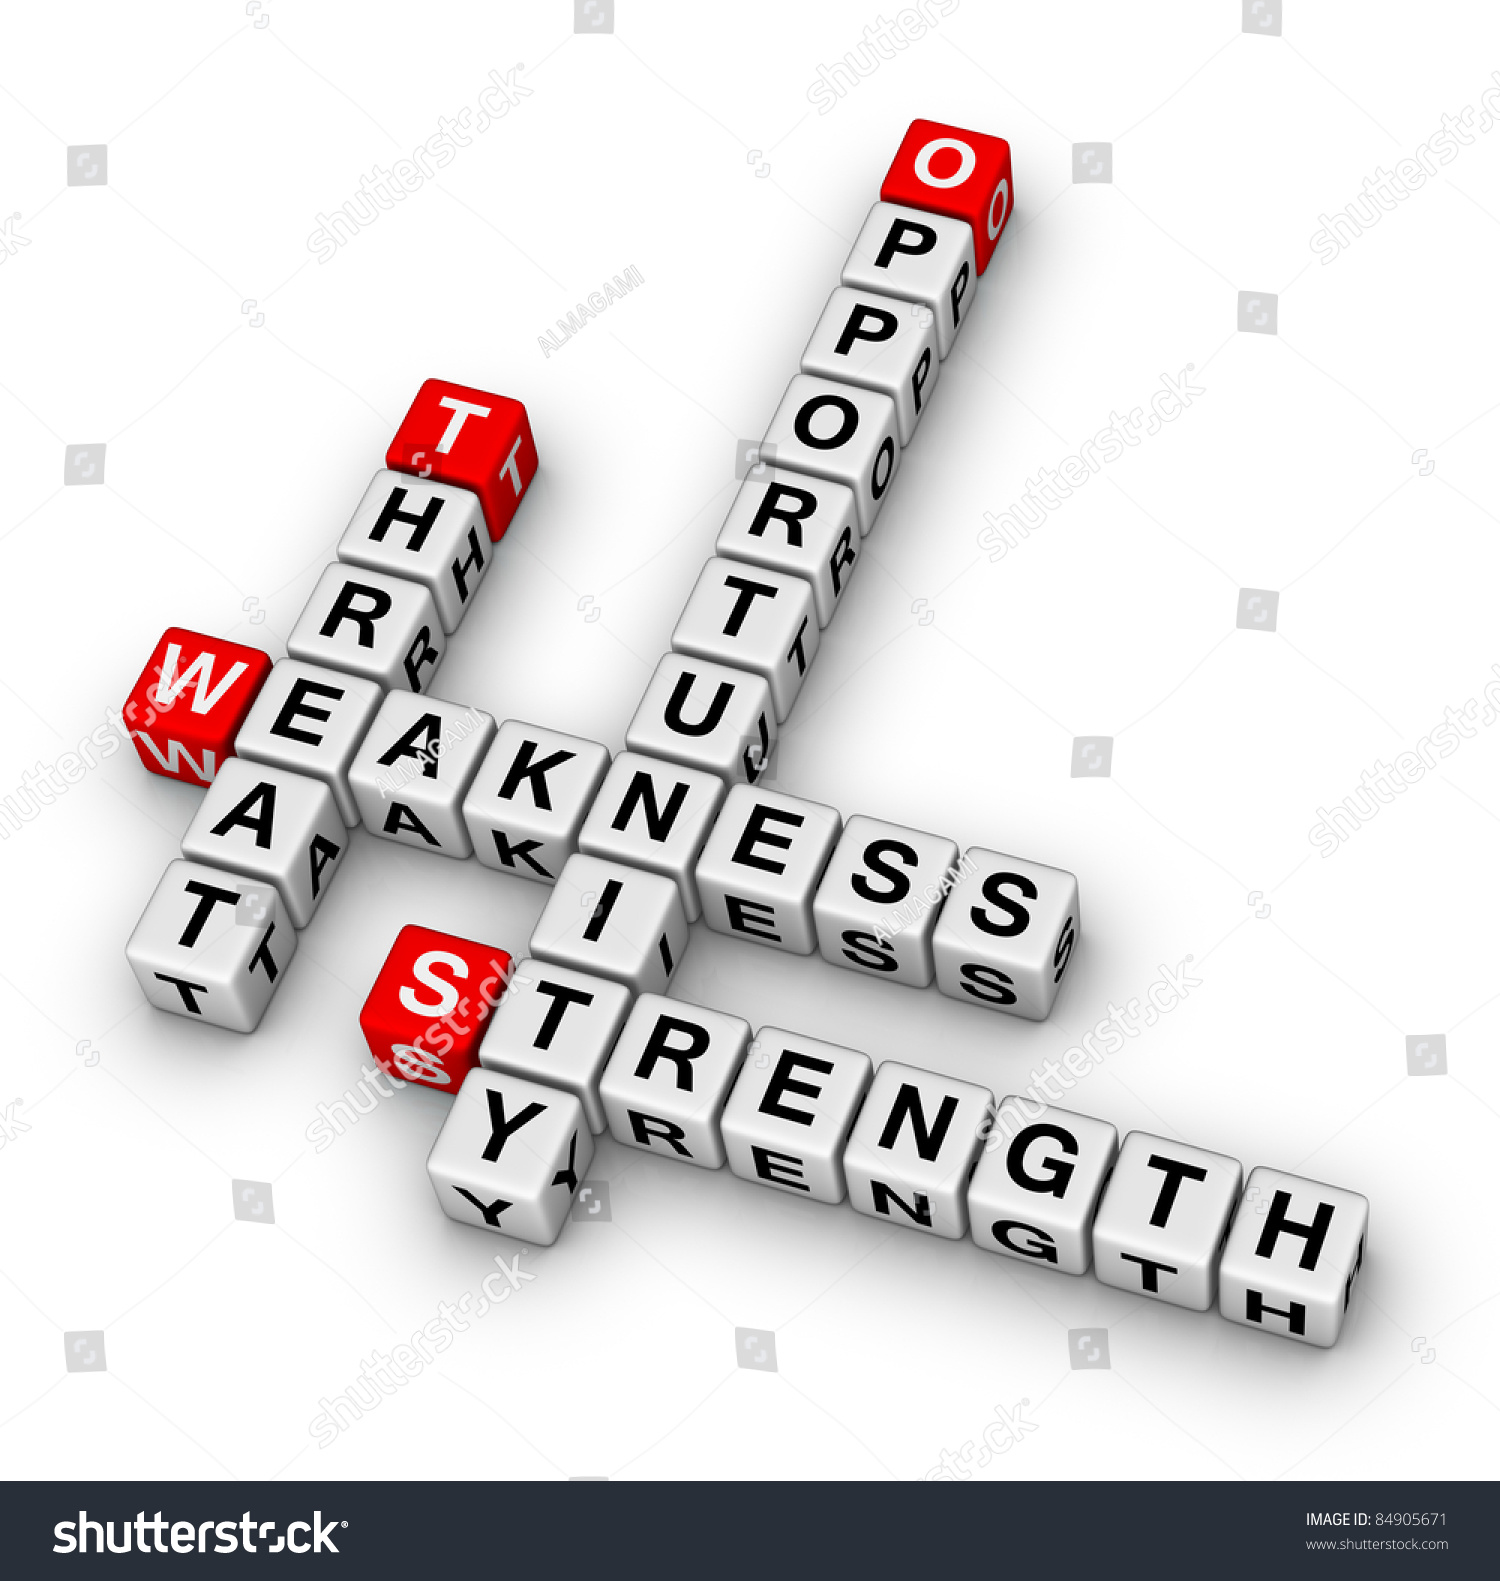 strengths weaknesses limitations opportunities and threats The solution discusses the strengths and weaknesses/limitations, opportunities and threats.